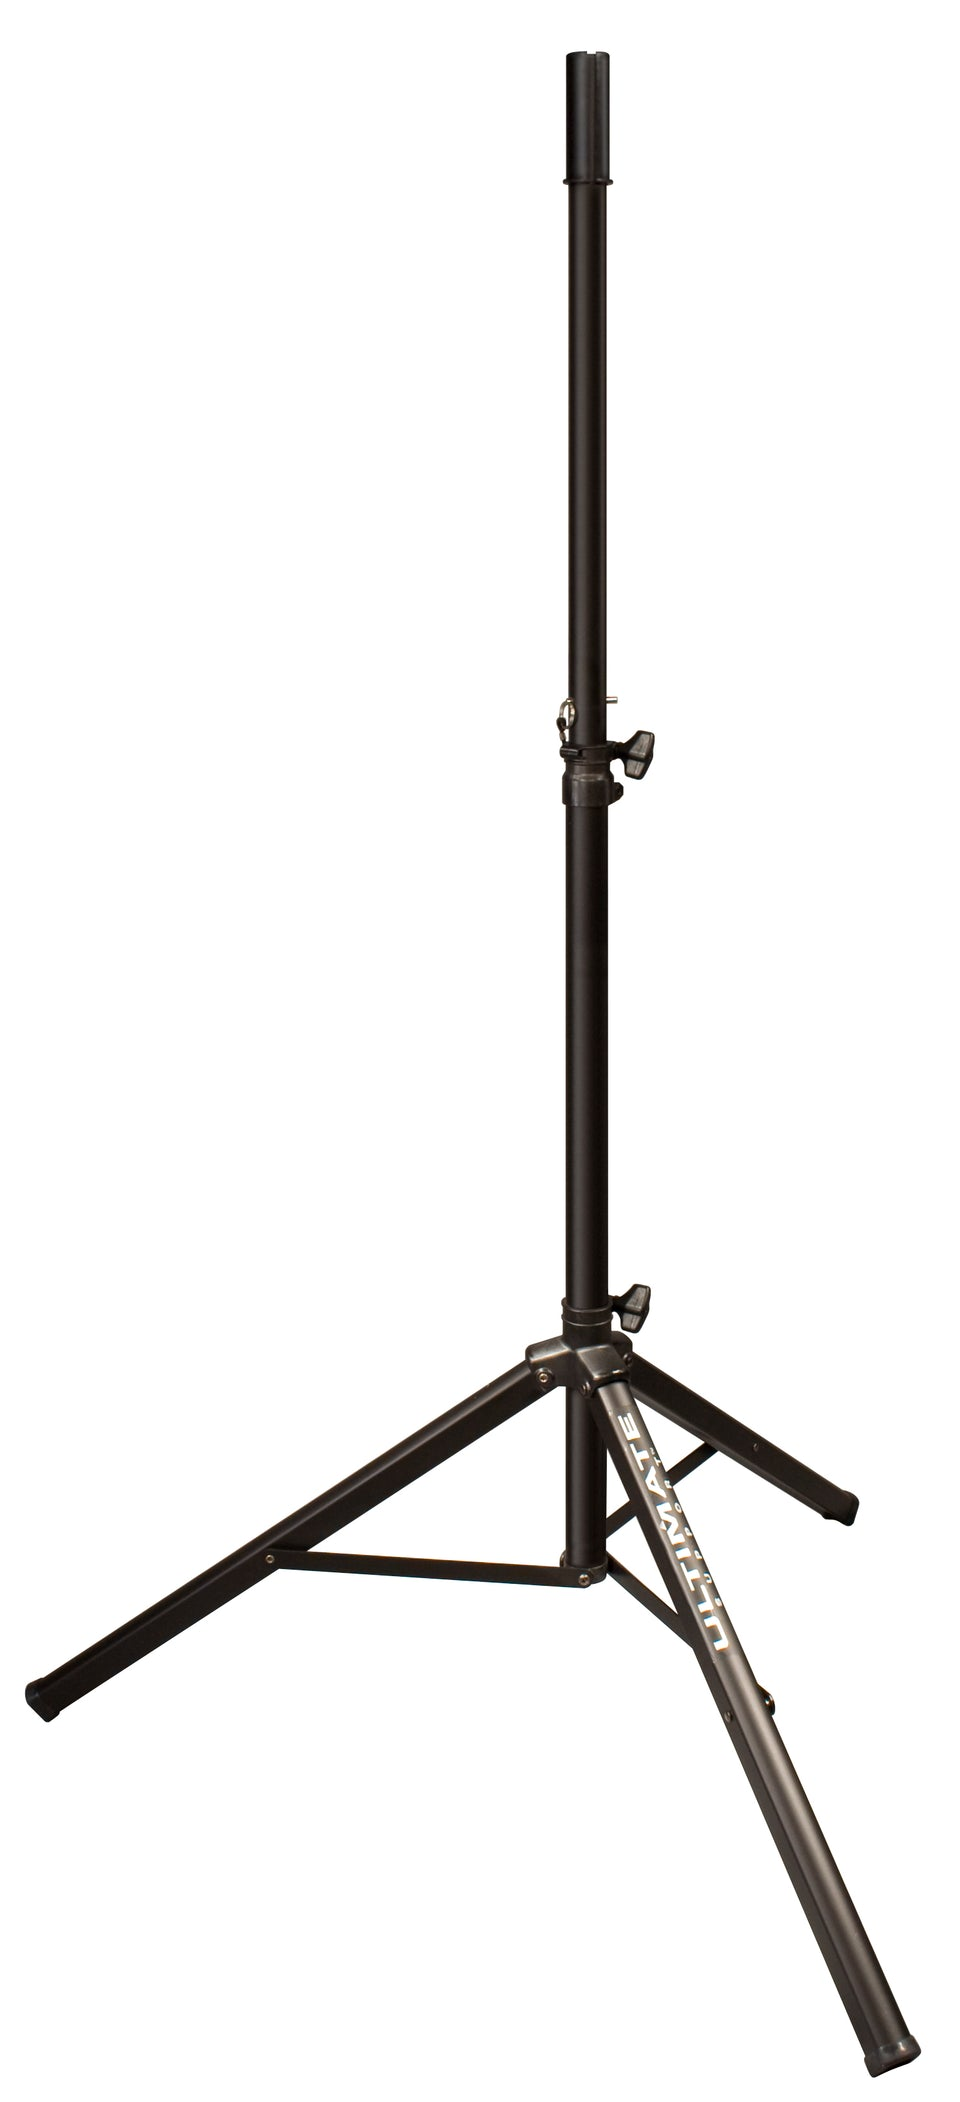 Ultimate Support TS-70B Aluminum Tripod Speaker Stand With Safe And Secure Locking Pin And 150 lb Load Capacity - Black